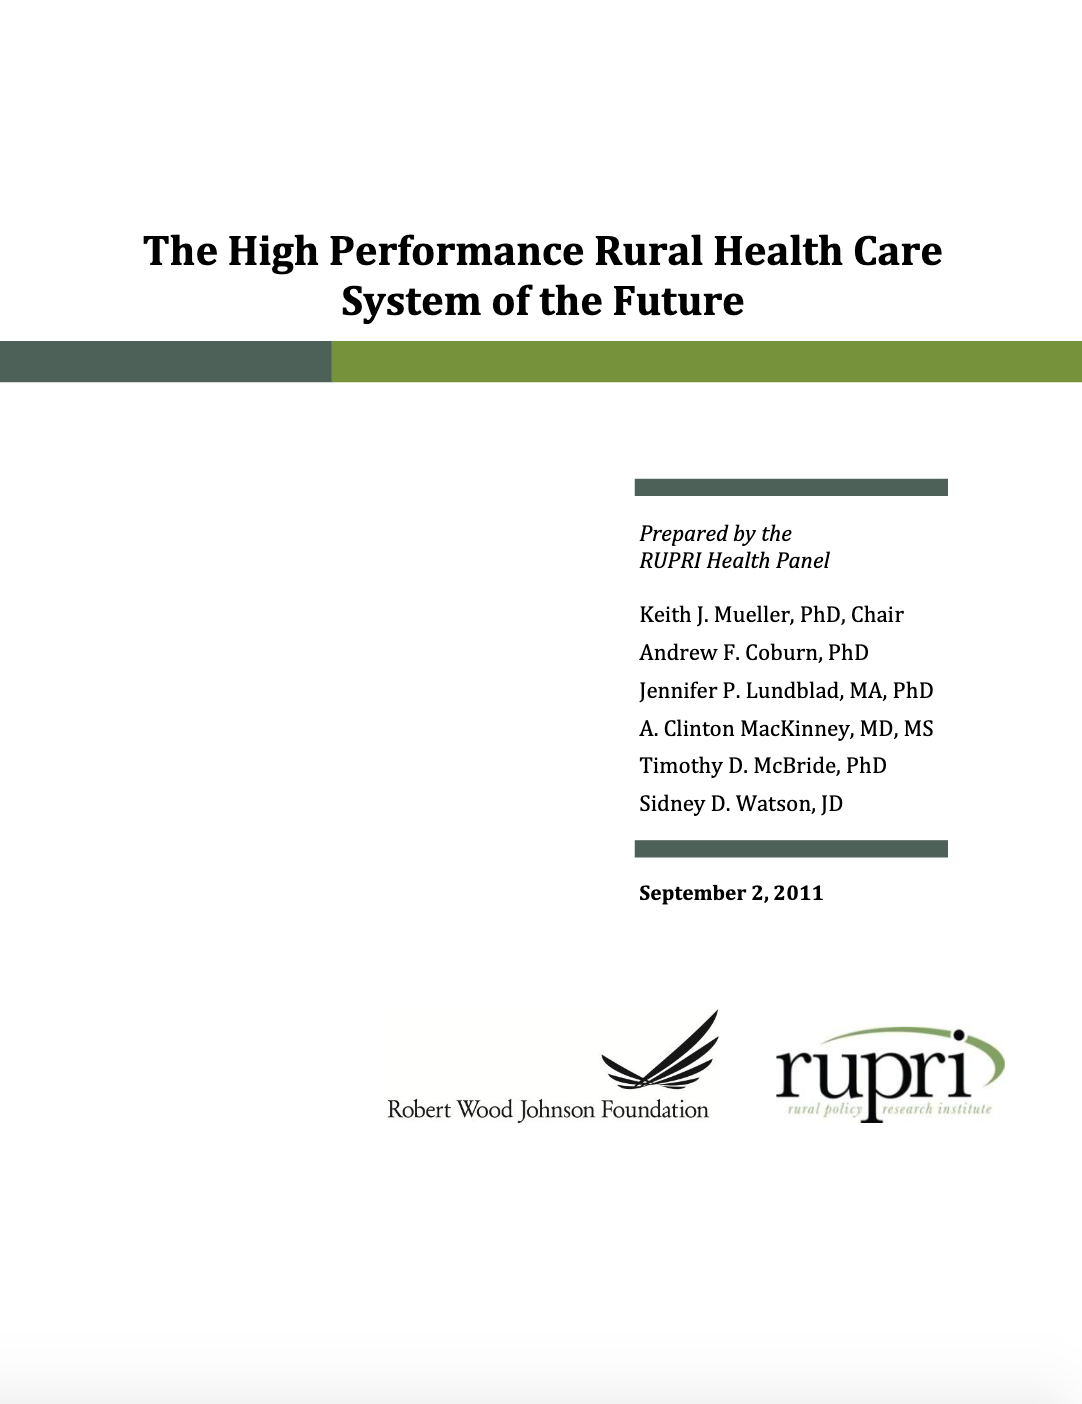 High Performance Rural Health Care System of the Future (Cover Image)